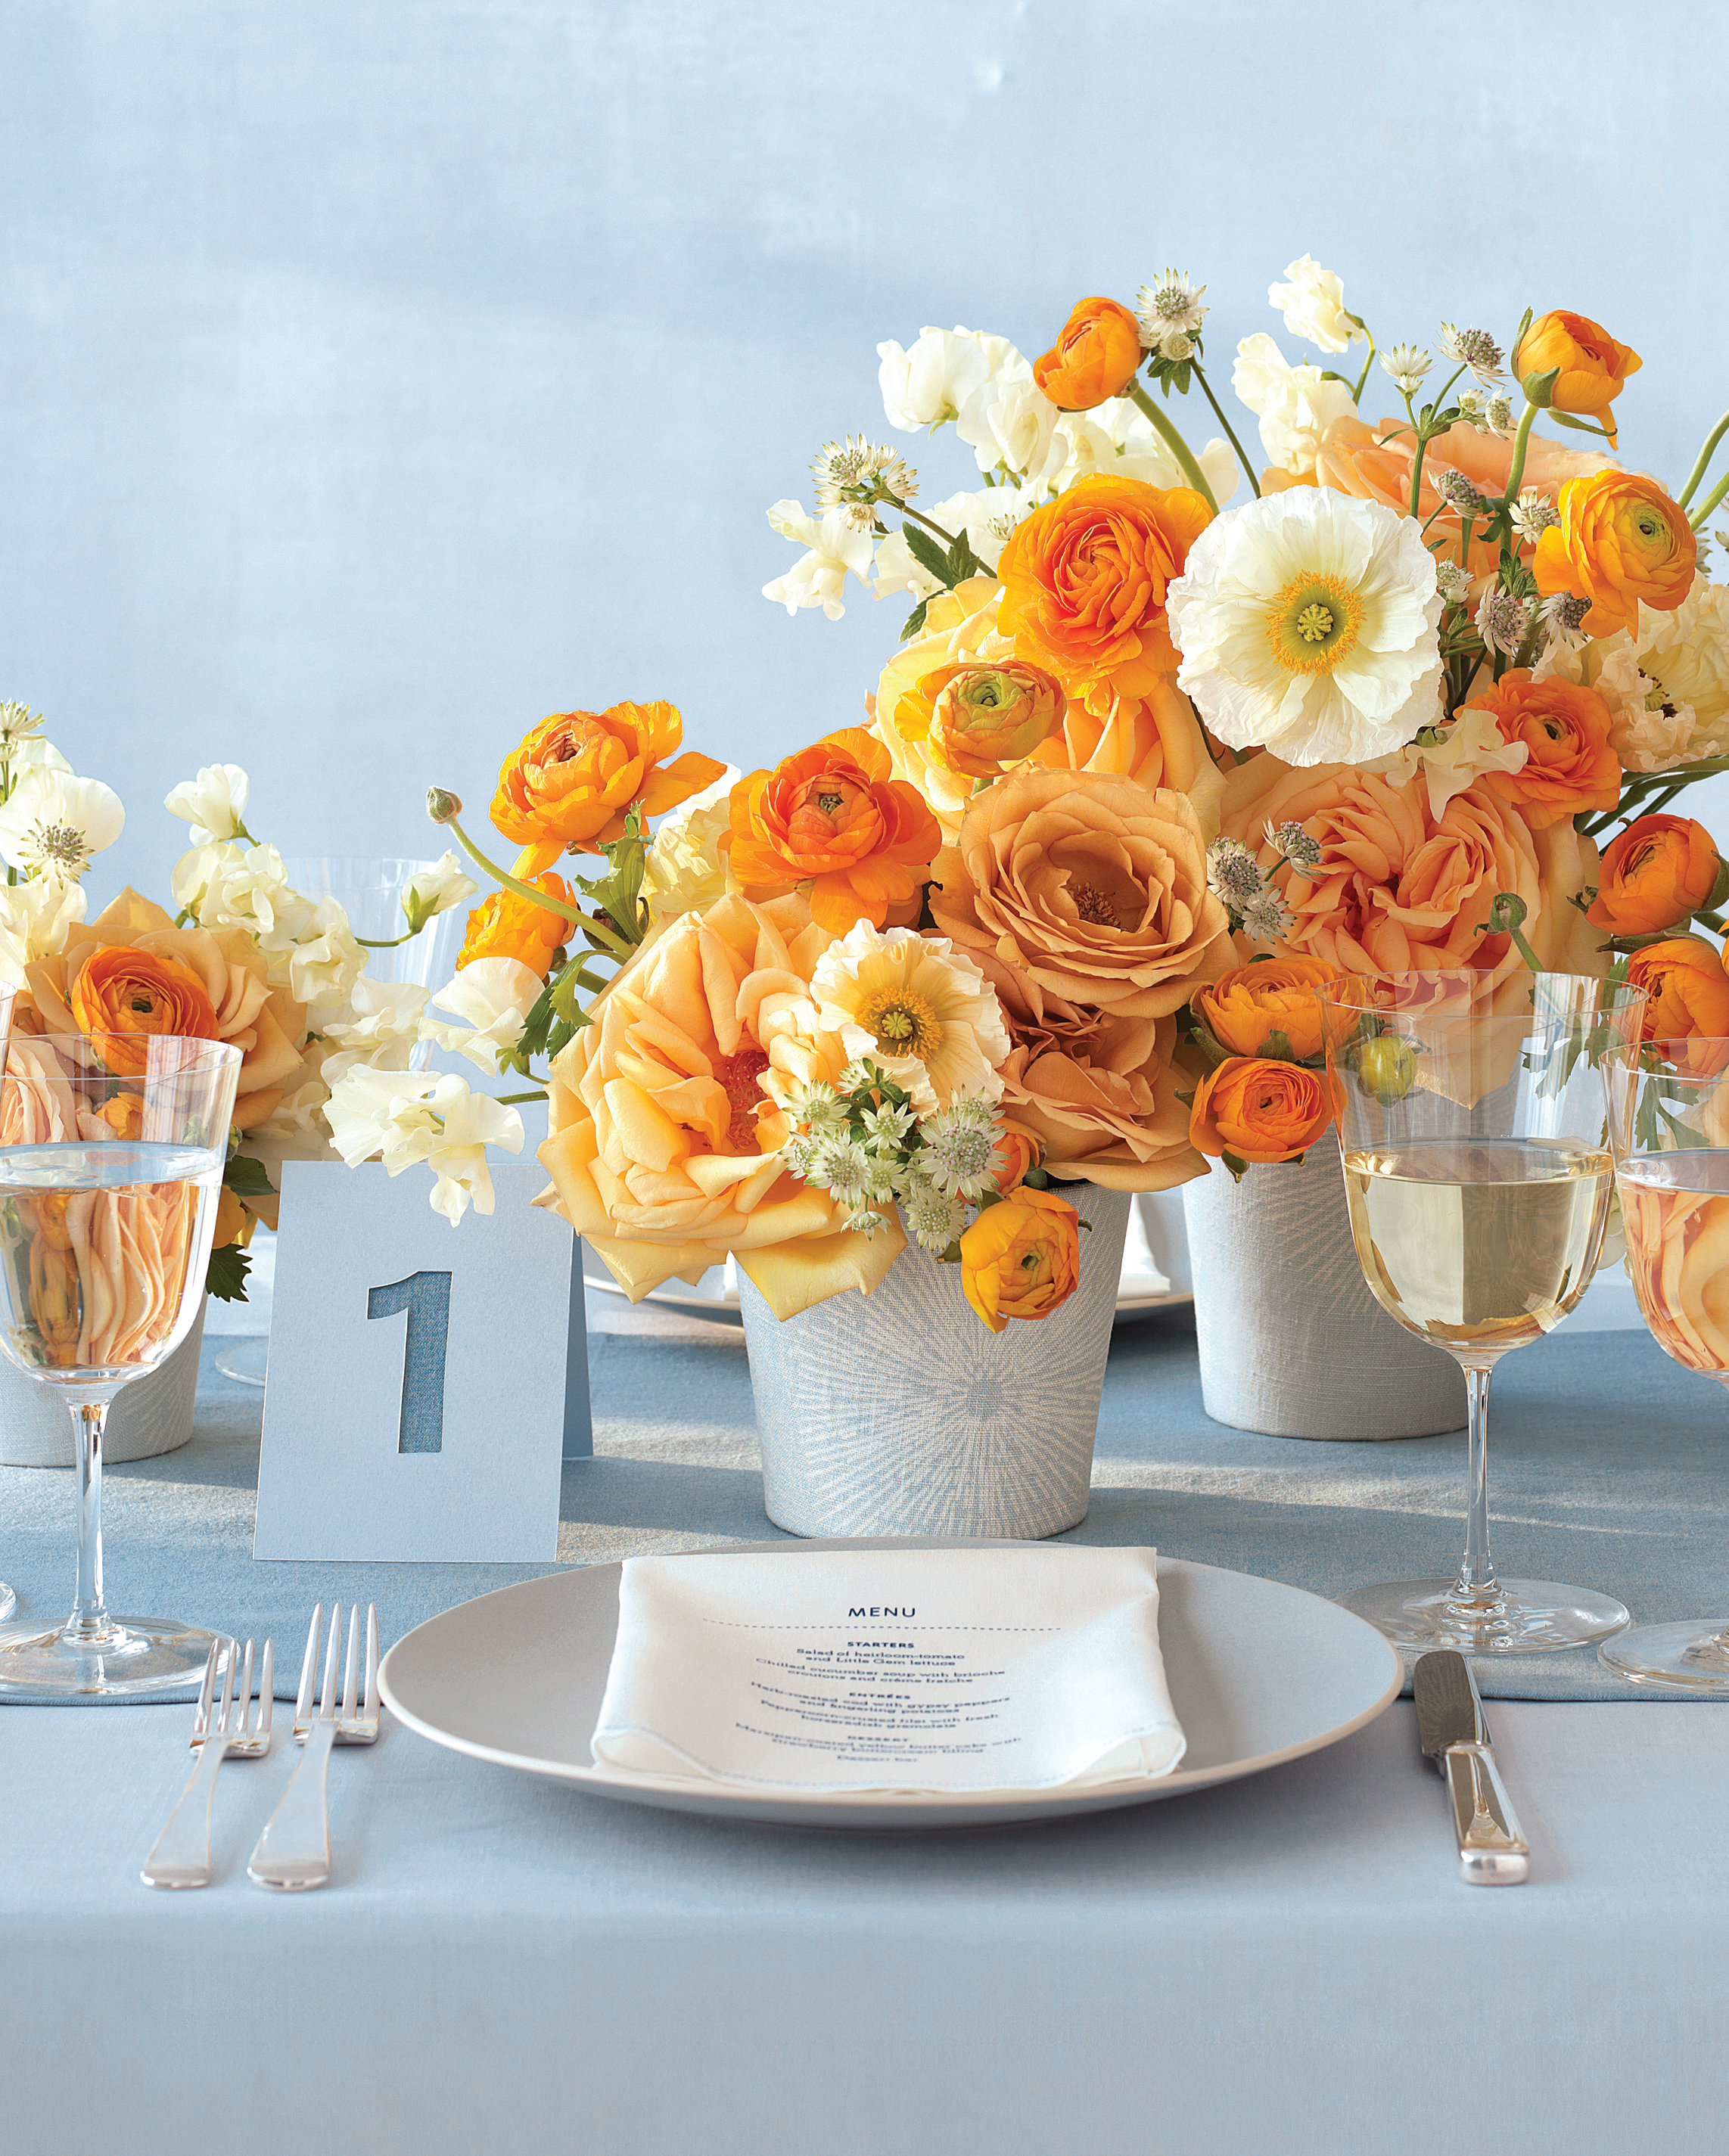 diy-table-numbers-fabric-cut-out-table-card-su11-0715.jpg